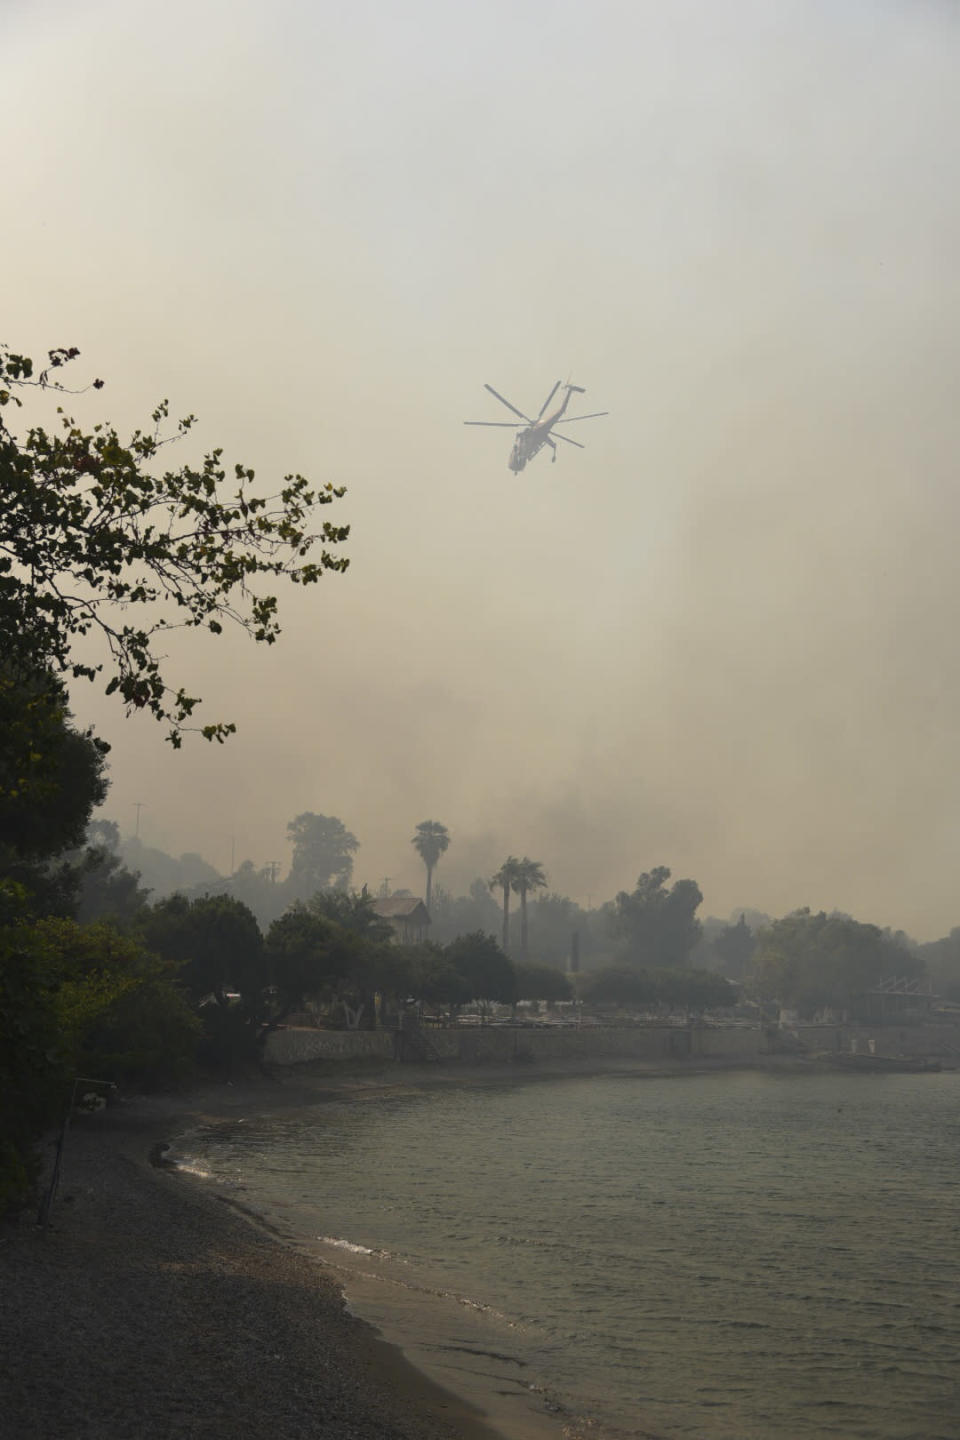 A helicopter operates during a wildfire near Ziria village, west of Patras, Greece, Saturday, Jul. 31, 2021. The fire, which started high up on a mountain slope, has moved dangerously close to seaside towns and the Fire Service has send a boat to help in a possible evacuation of people. (AP Photo/Andreas Alexopoulos)